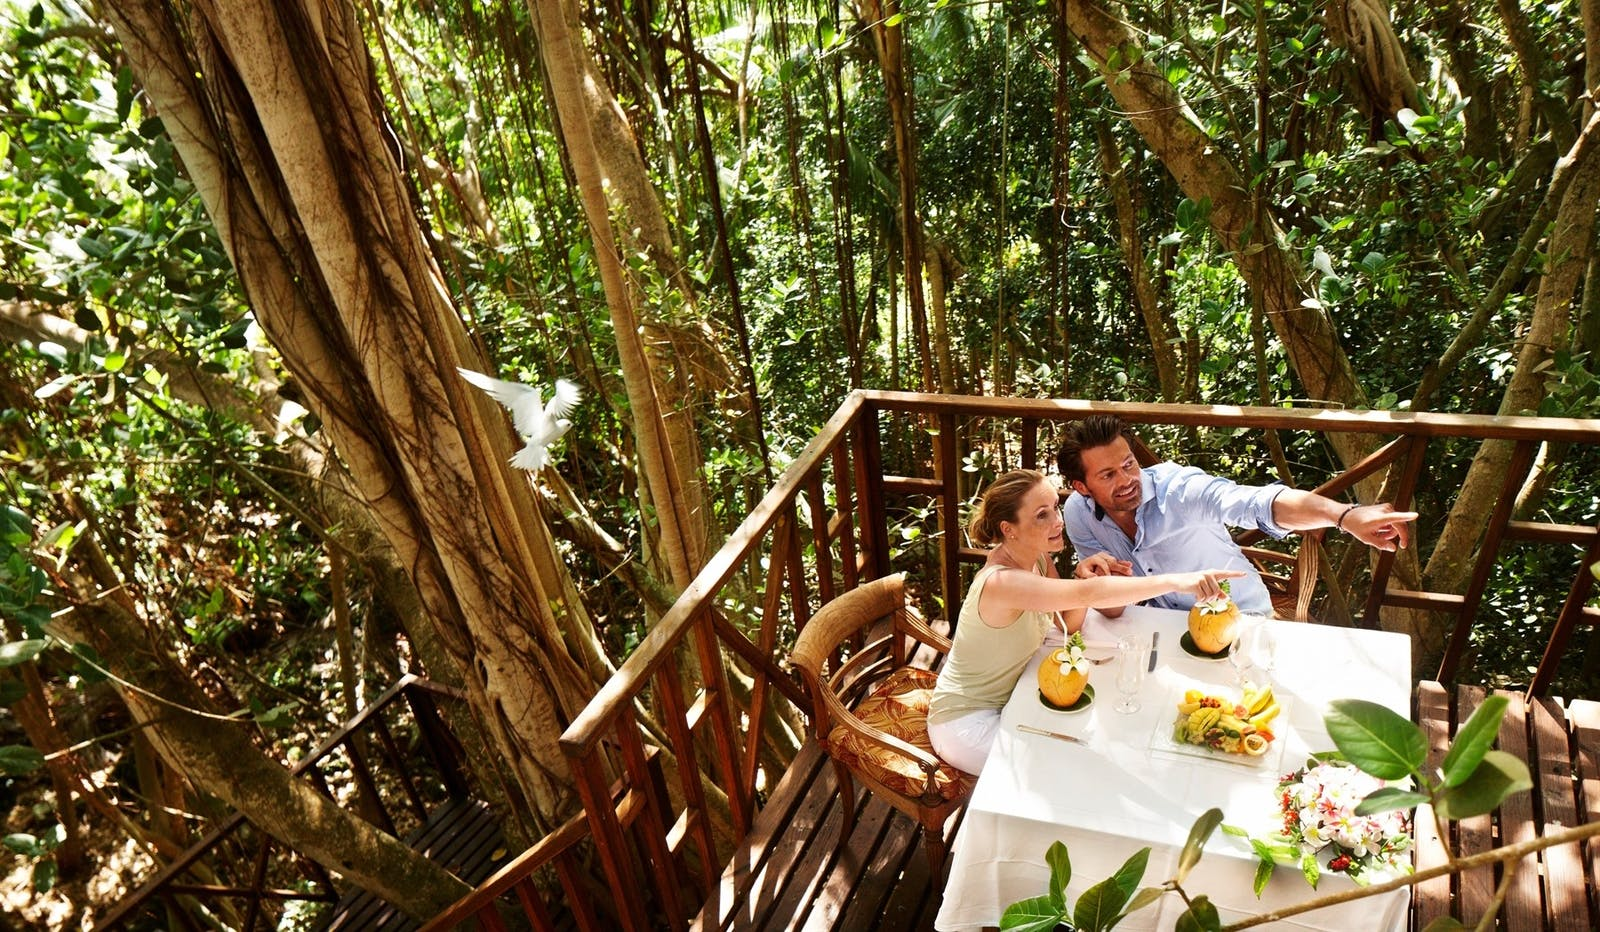 Banyan Tree Dining, Fregate Island Private, Seychelles